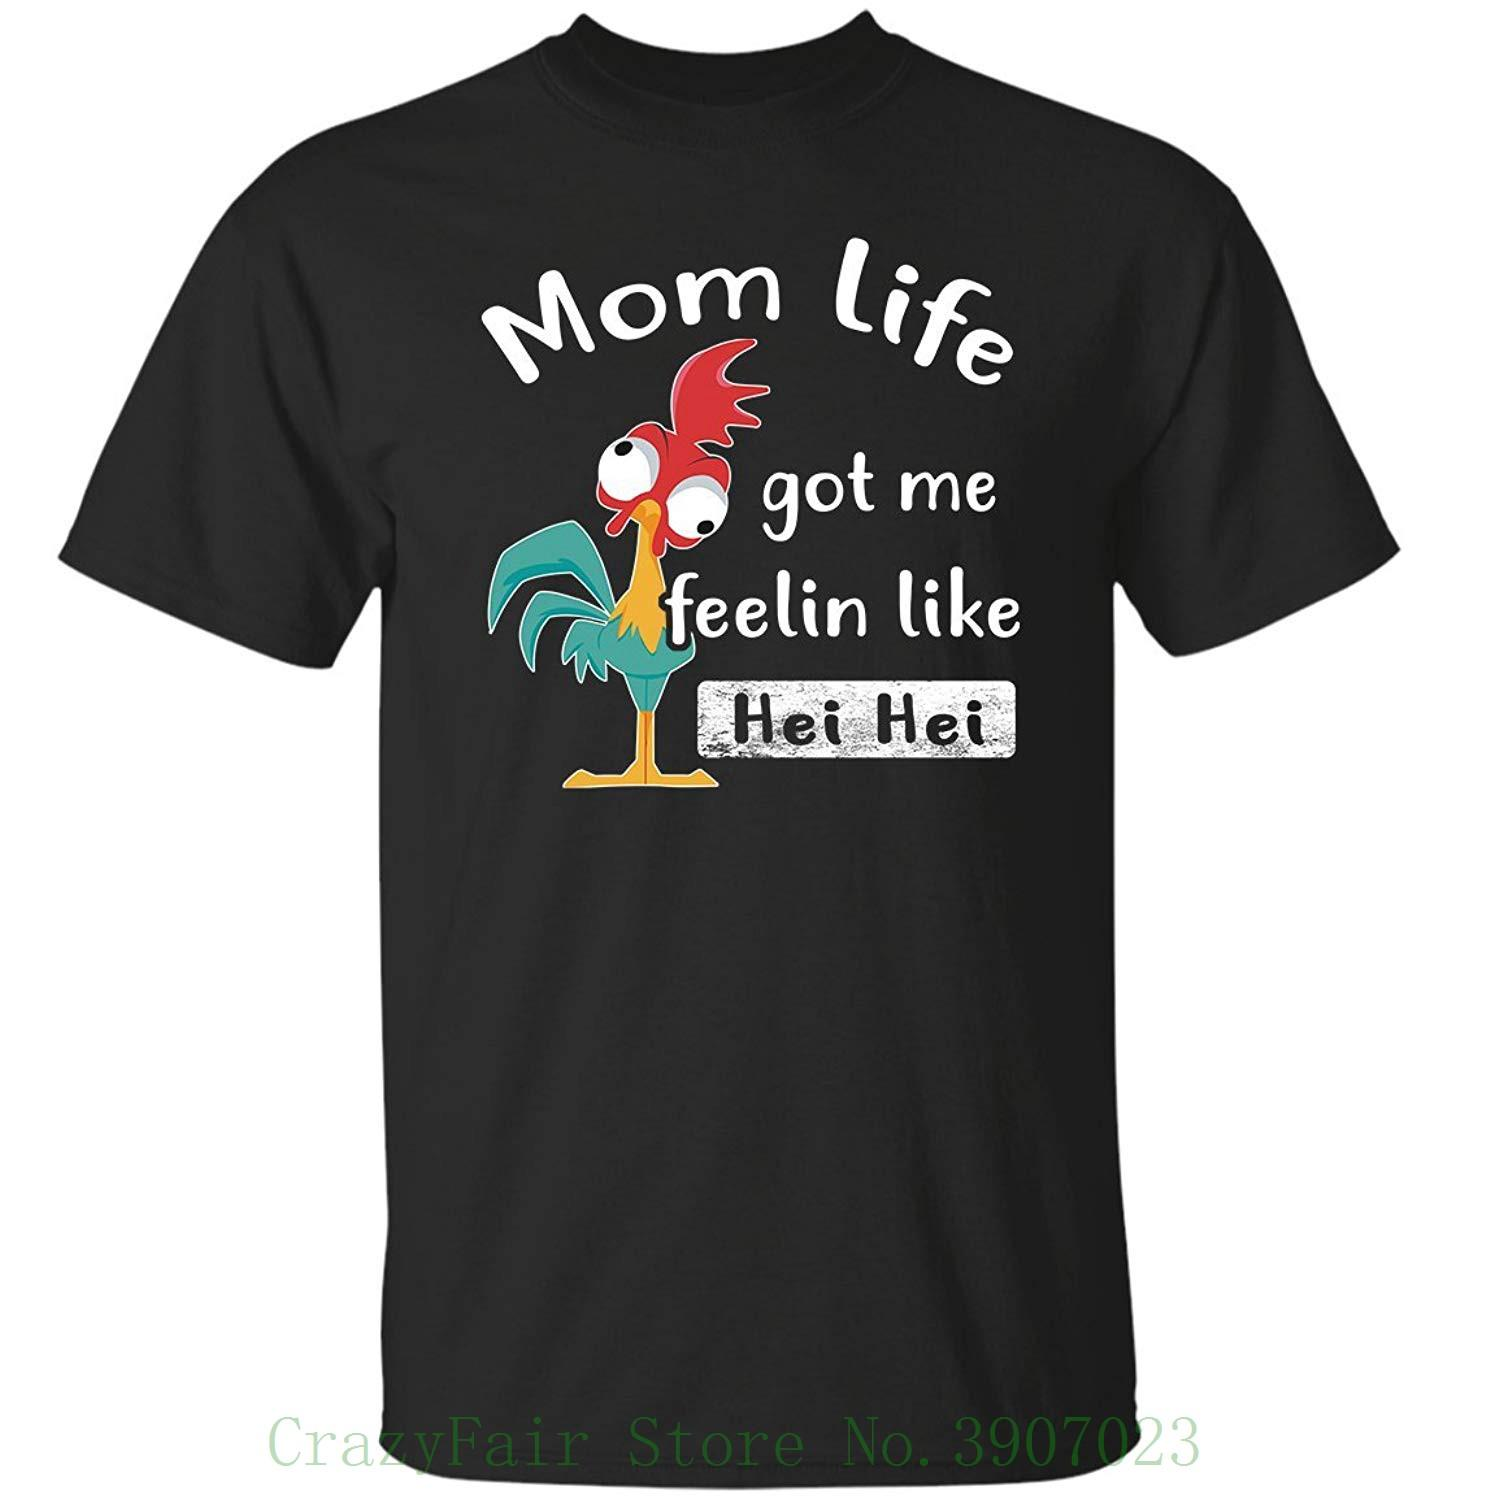 0cb915e3 Mom Life Got Me Feelin Like Hei Shirt Funny Mother'S Day Gift T Shirt Men Tee  Shirt Tops Short Sleeve Cotton Fitness T Shirts Coolest T Shirt Shirts With  ...